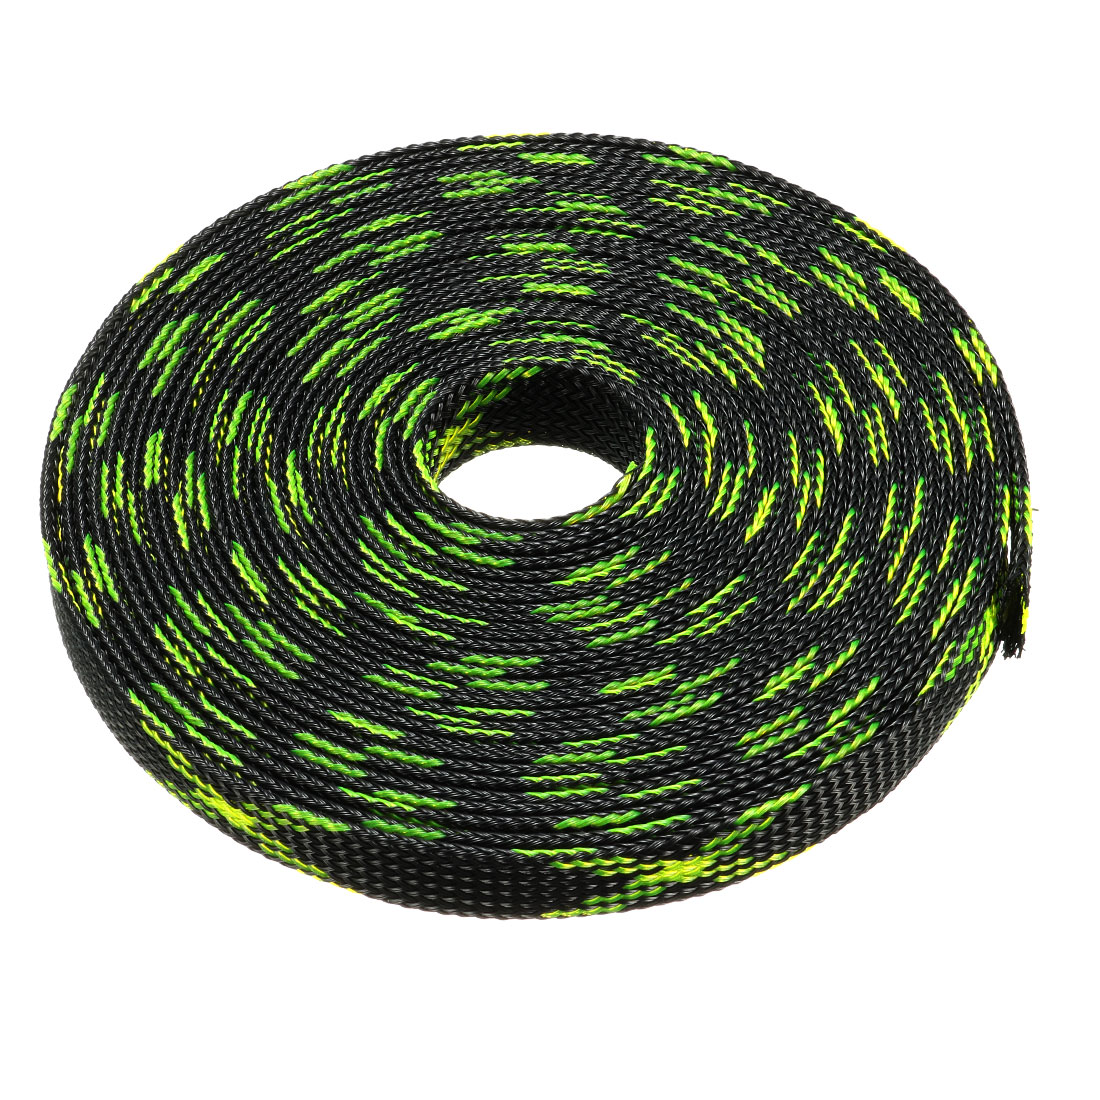 12mm PET Cable Wire Wrap Expandable Braided Sleeving Black Fluorescent Green 5M Length